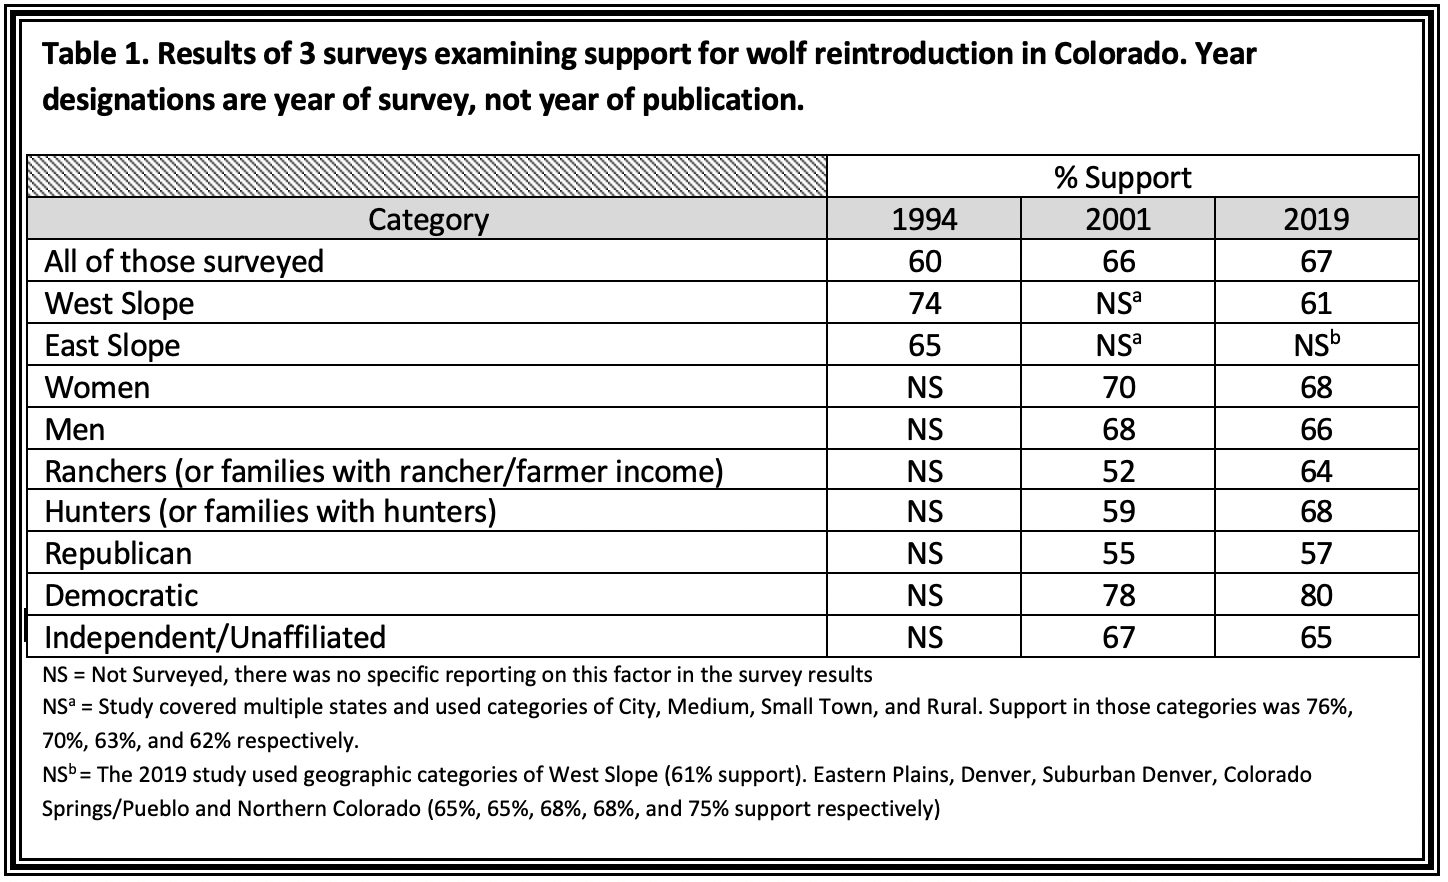 Table 1. Results of 3 surveys examining support for wolf reintroduction in Colorado. Year designations are year of survey, not year of publication. % Support Category 1994 2001 2019 All of those surveyed 60 66 67 West Slope 74 NSa 61 East Slope 65 NSa NSb Women NS 70 68 Men NS 68 66 Ranchers (or families with rancher/farmer income) NS 52 64 Hunters (or families with hunters) NS 59 68 Republican NS 55 57 Democratic NS 78 80 Independent/Unaffiliated NS 67 65 NS = Not Surveyed, there was no specific reporting on this factor in the survey results NSa = Study covered multiple states and used categories of City, Medium, Small Town, and Rural. Support in those categories was 76%, 70%, 63%, and 62% respectively. NSb = The 2019 study used geographic categories of West Slope (61% support) , Eastern Plains, Denver, Suburban Denver, Colorado Springs/Pueblo and Northern Colorado (65%, 65%, 68%, 68%, and 75% support respectively)